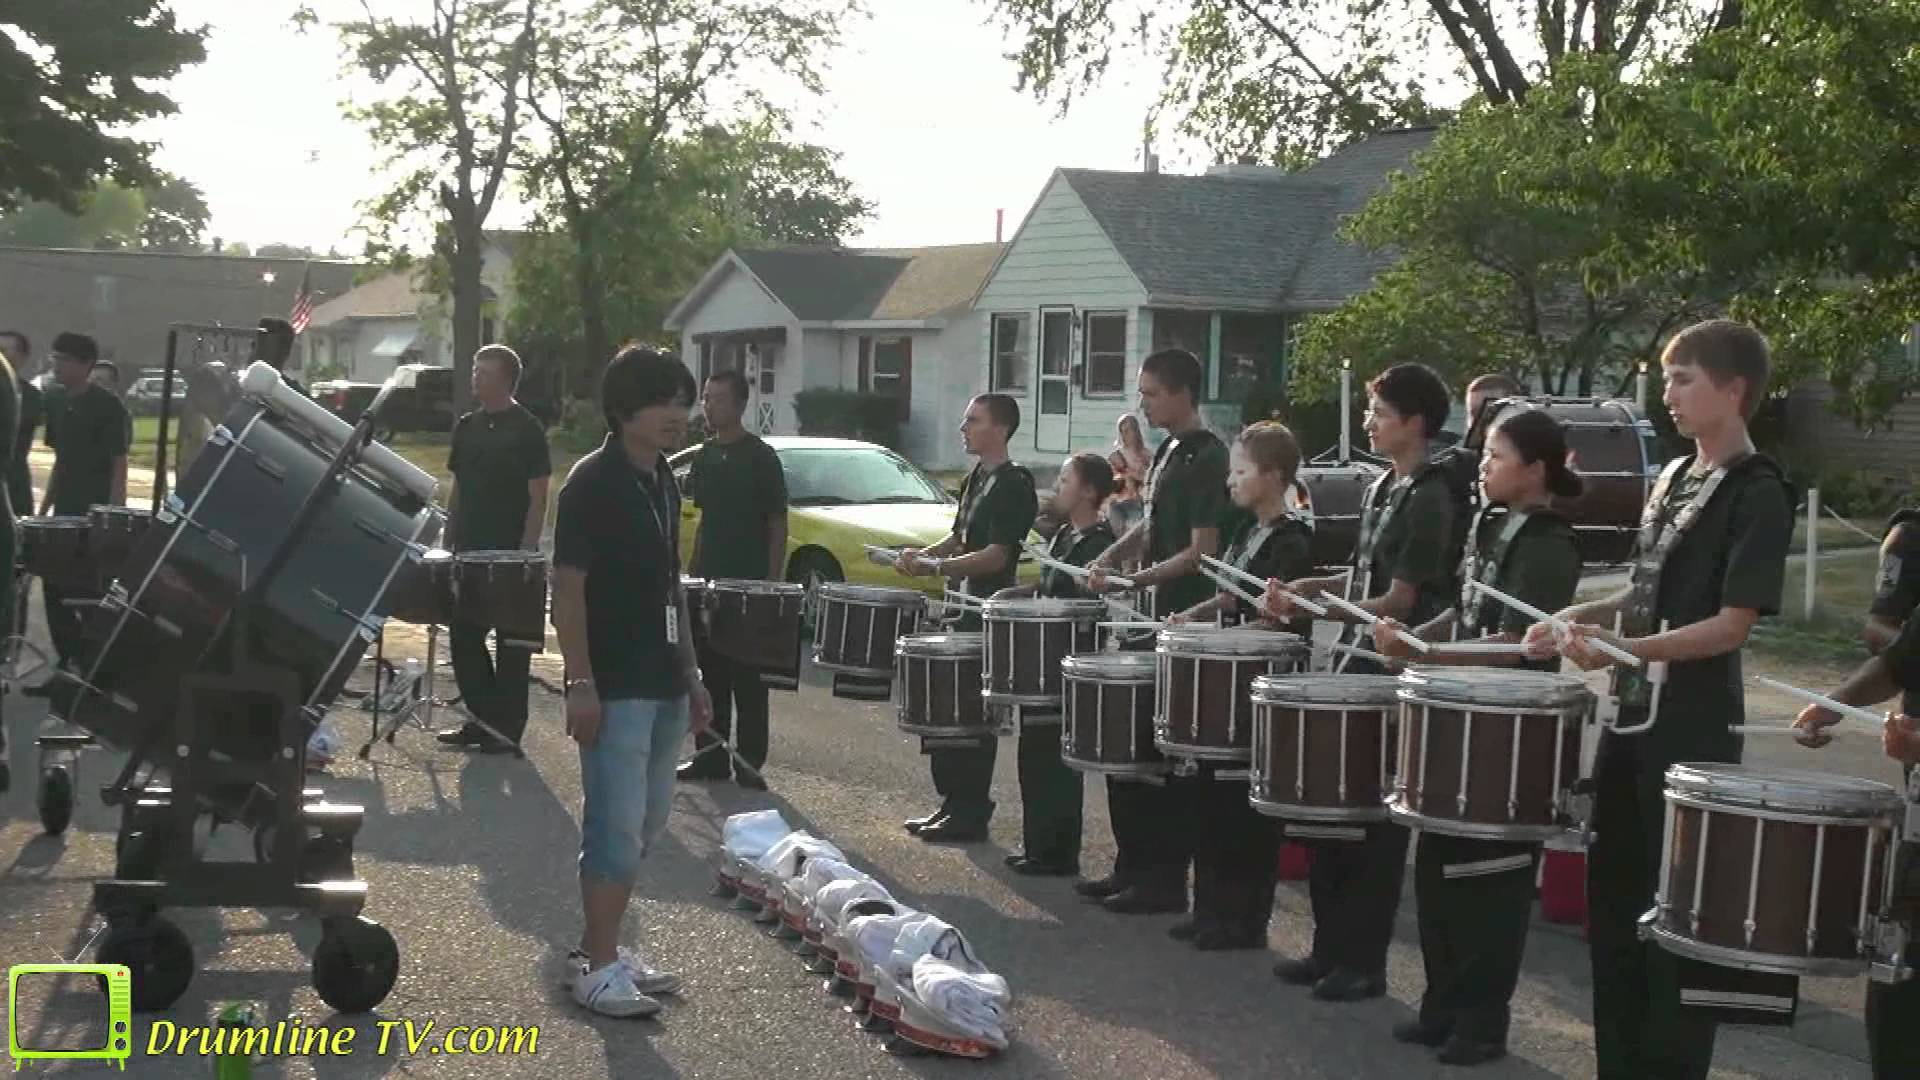 Pioneer Drumline 2012 – Pageant of Drums Show – Michigan City, Indiana 6-30-2012